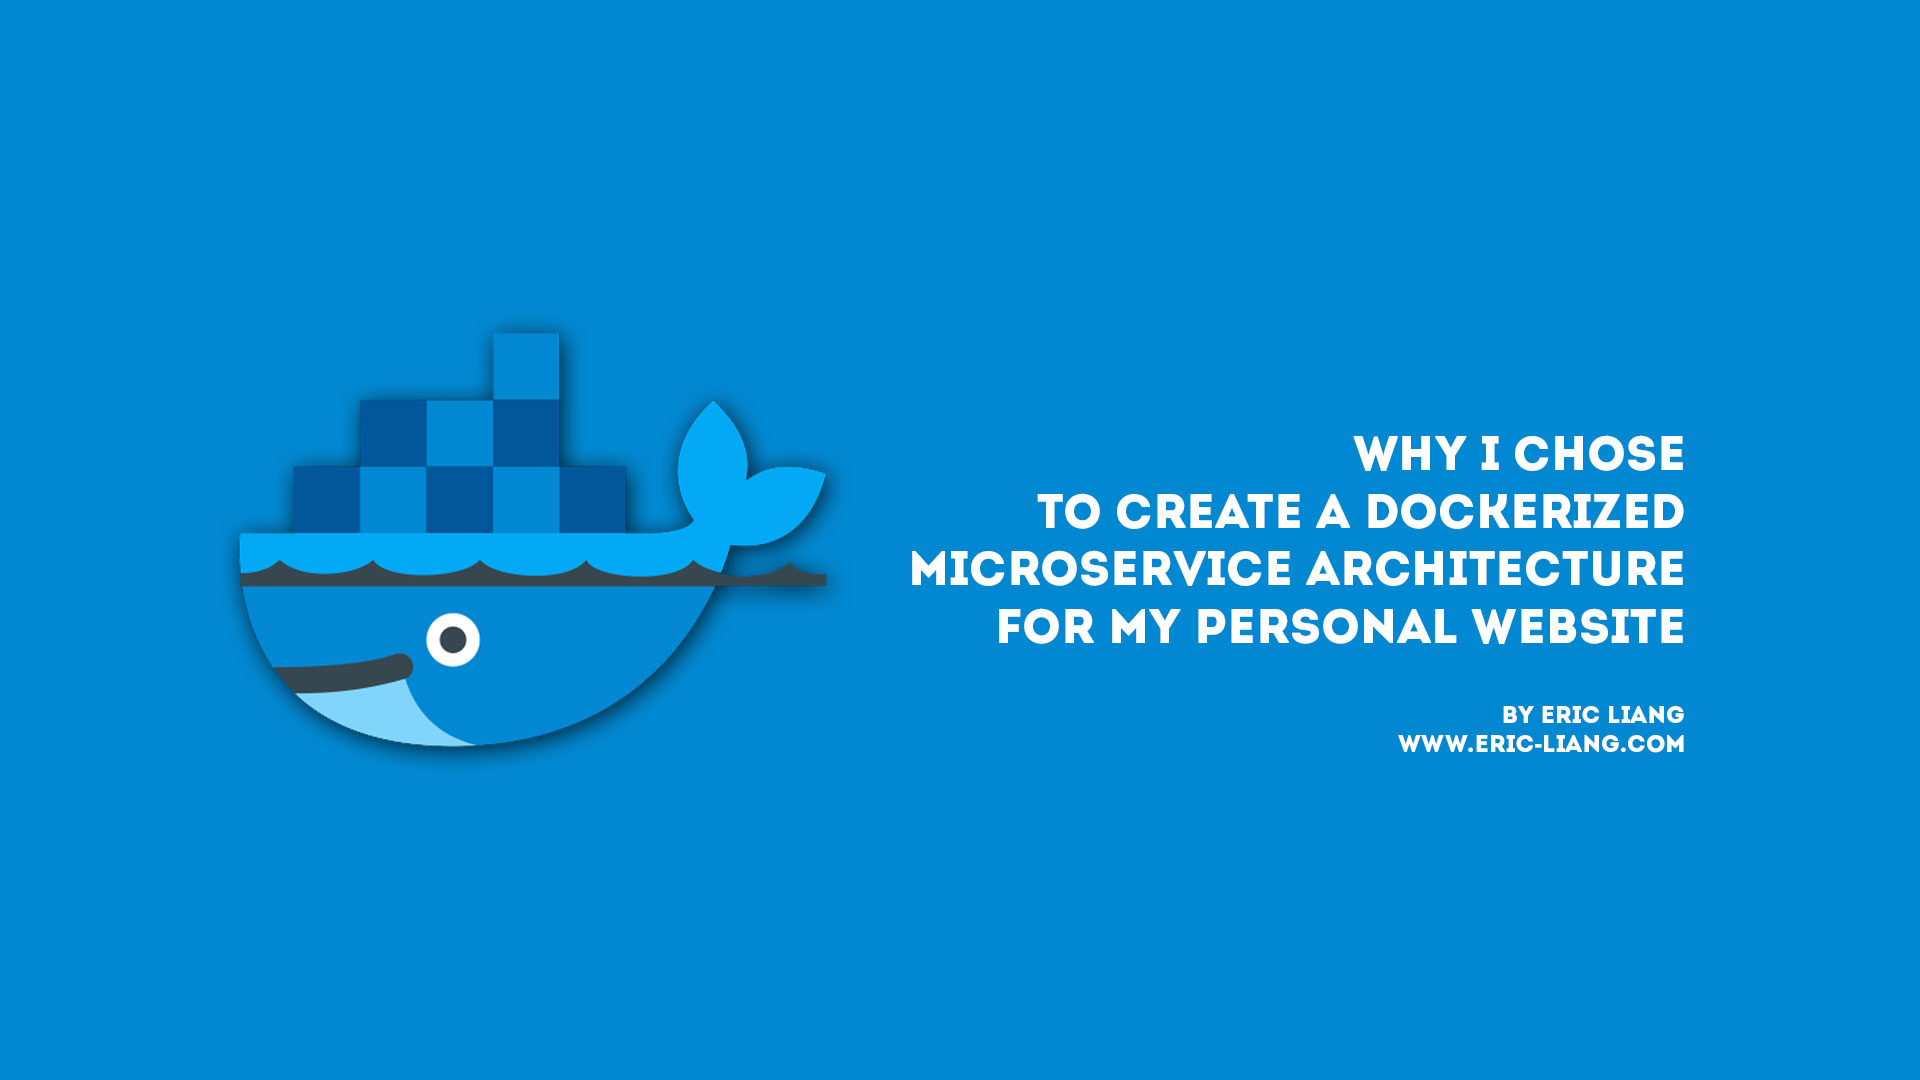 Why I Chose To Create A Dockerized Microservice Architecture for My Personal Website